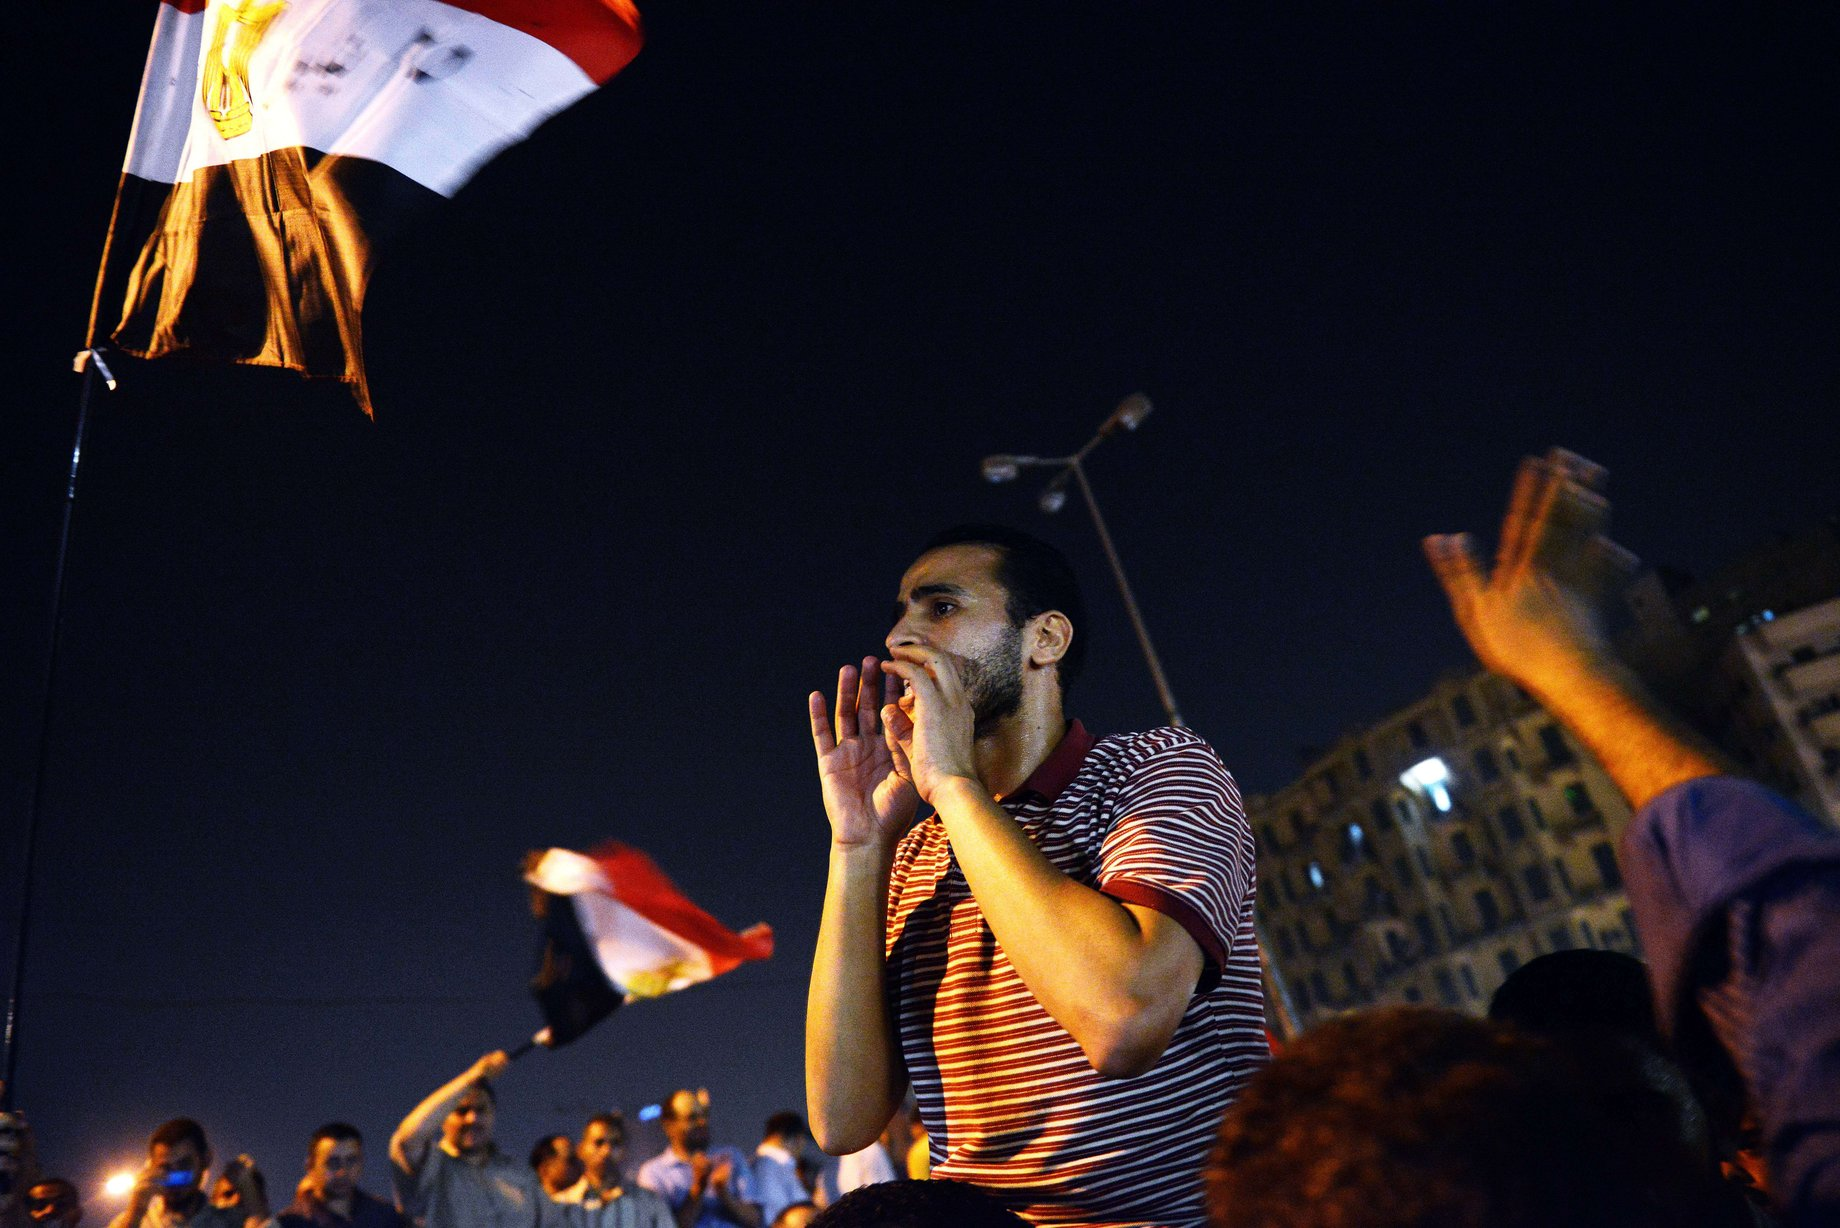 Thousands of Egyptians shout political slogans in support of the Egyptian president Mohamed Morsi as they celebrate his decision on the dismissal of former Egyptian Defence Minister and Field Marshall Hussein Tantawi, on 12 August at Tahrir square in Cairo AFP PHOTO/GIANLUIGI GUERCIA